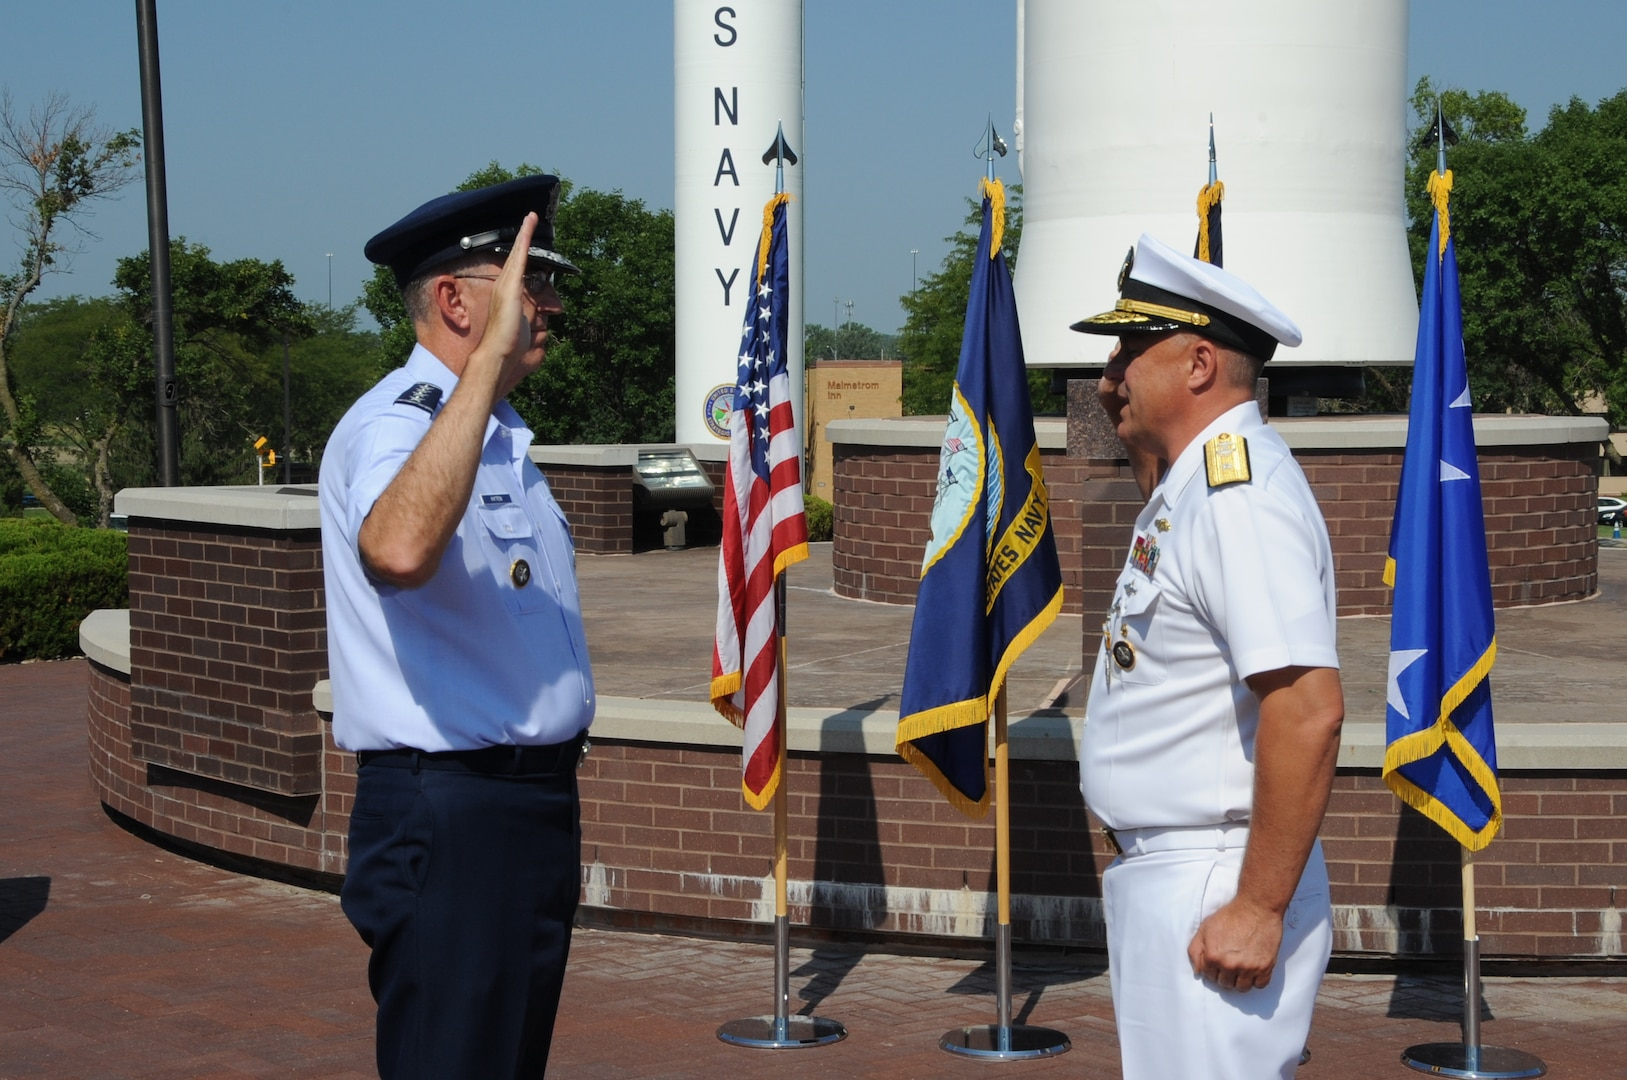 U.S. Air Force Gen. John E. Hyten, commander of U.S. Strategic Command (USSTRATCOM), reaffirms the oath of office to U.S. Navy Rear Adm. John Spencer during his promotion ceremony on the missile deck at USSTRATCOM headquarters on Offutt Air Force Base, Neb., Aug. 9, 2018. Spencer is the executive assistant to Gen. Hyten. His next assignment will be the director of Nuclear Support Directorate, Defense Threat Reduction Agency at Ft. Belvoir, Va.  USSTRATCOM has global responsibilities assigned through the Unified Command Plan that include strategic deterrence, nuclear operations, space operations, joint electromagnetic spectrum operations, global strike, missile defense, and analysis and targeting.